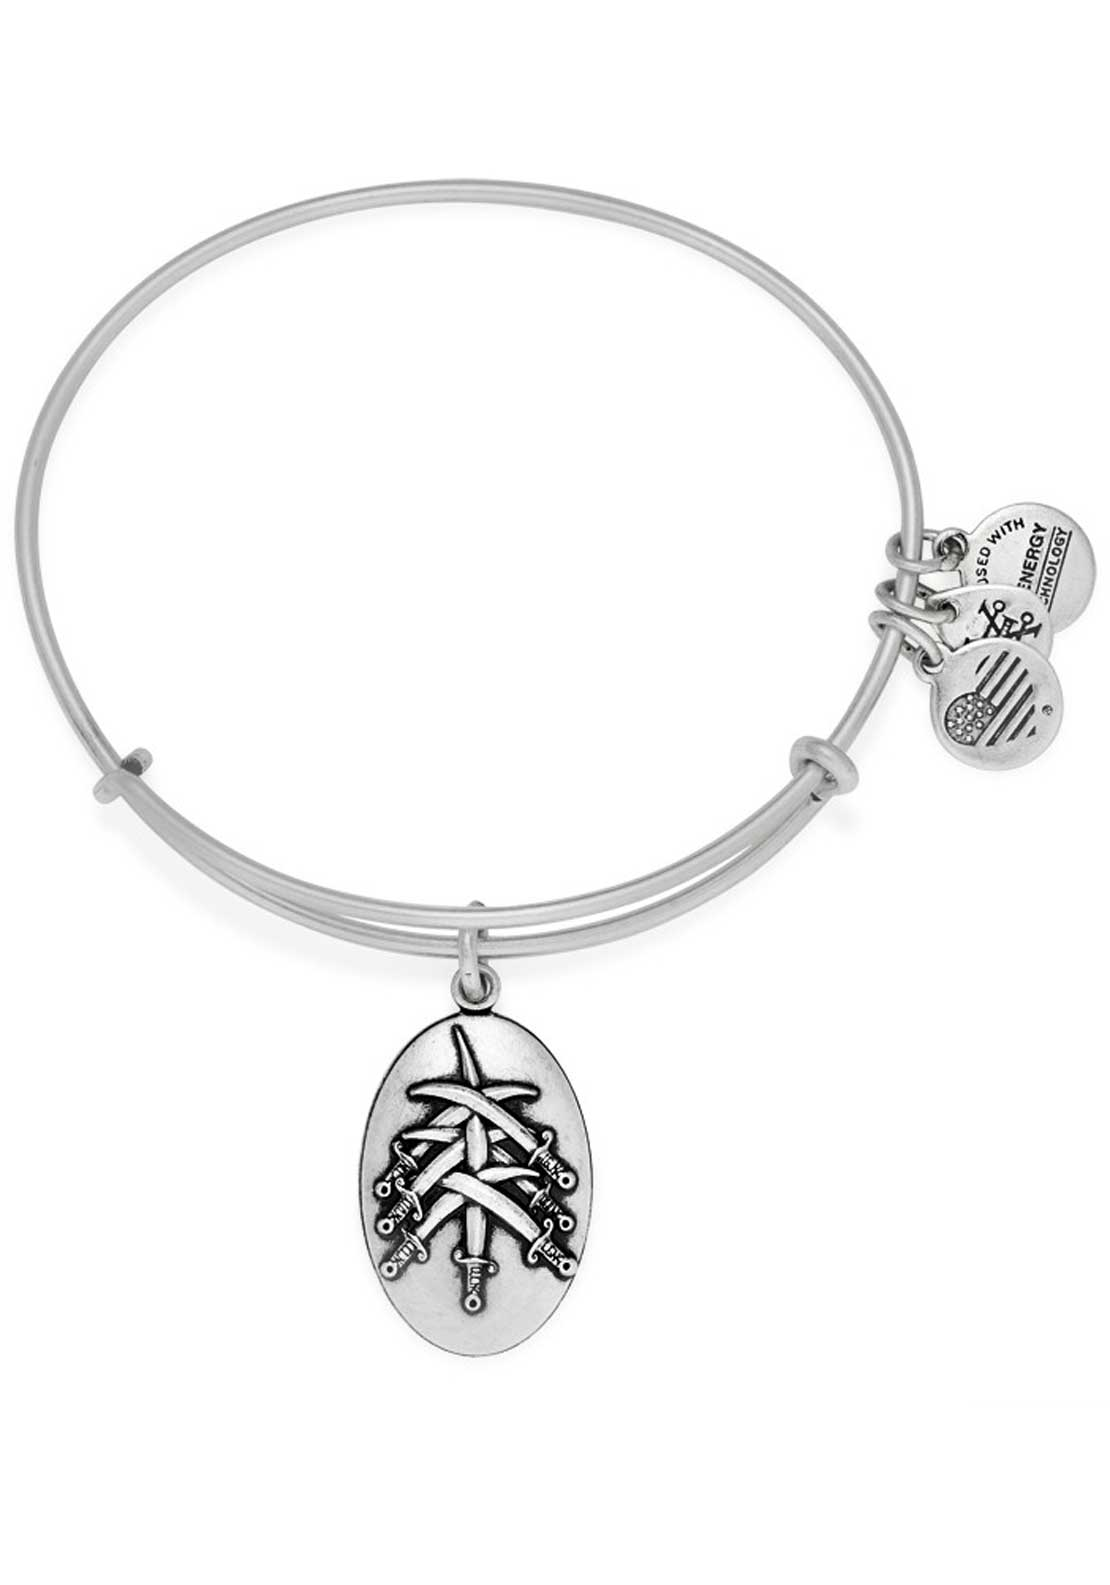 Alex and Ani (+) Energy Seven Swords Bracelet, Silver